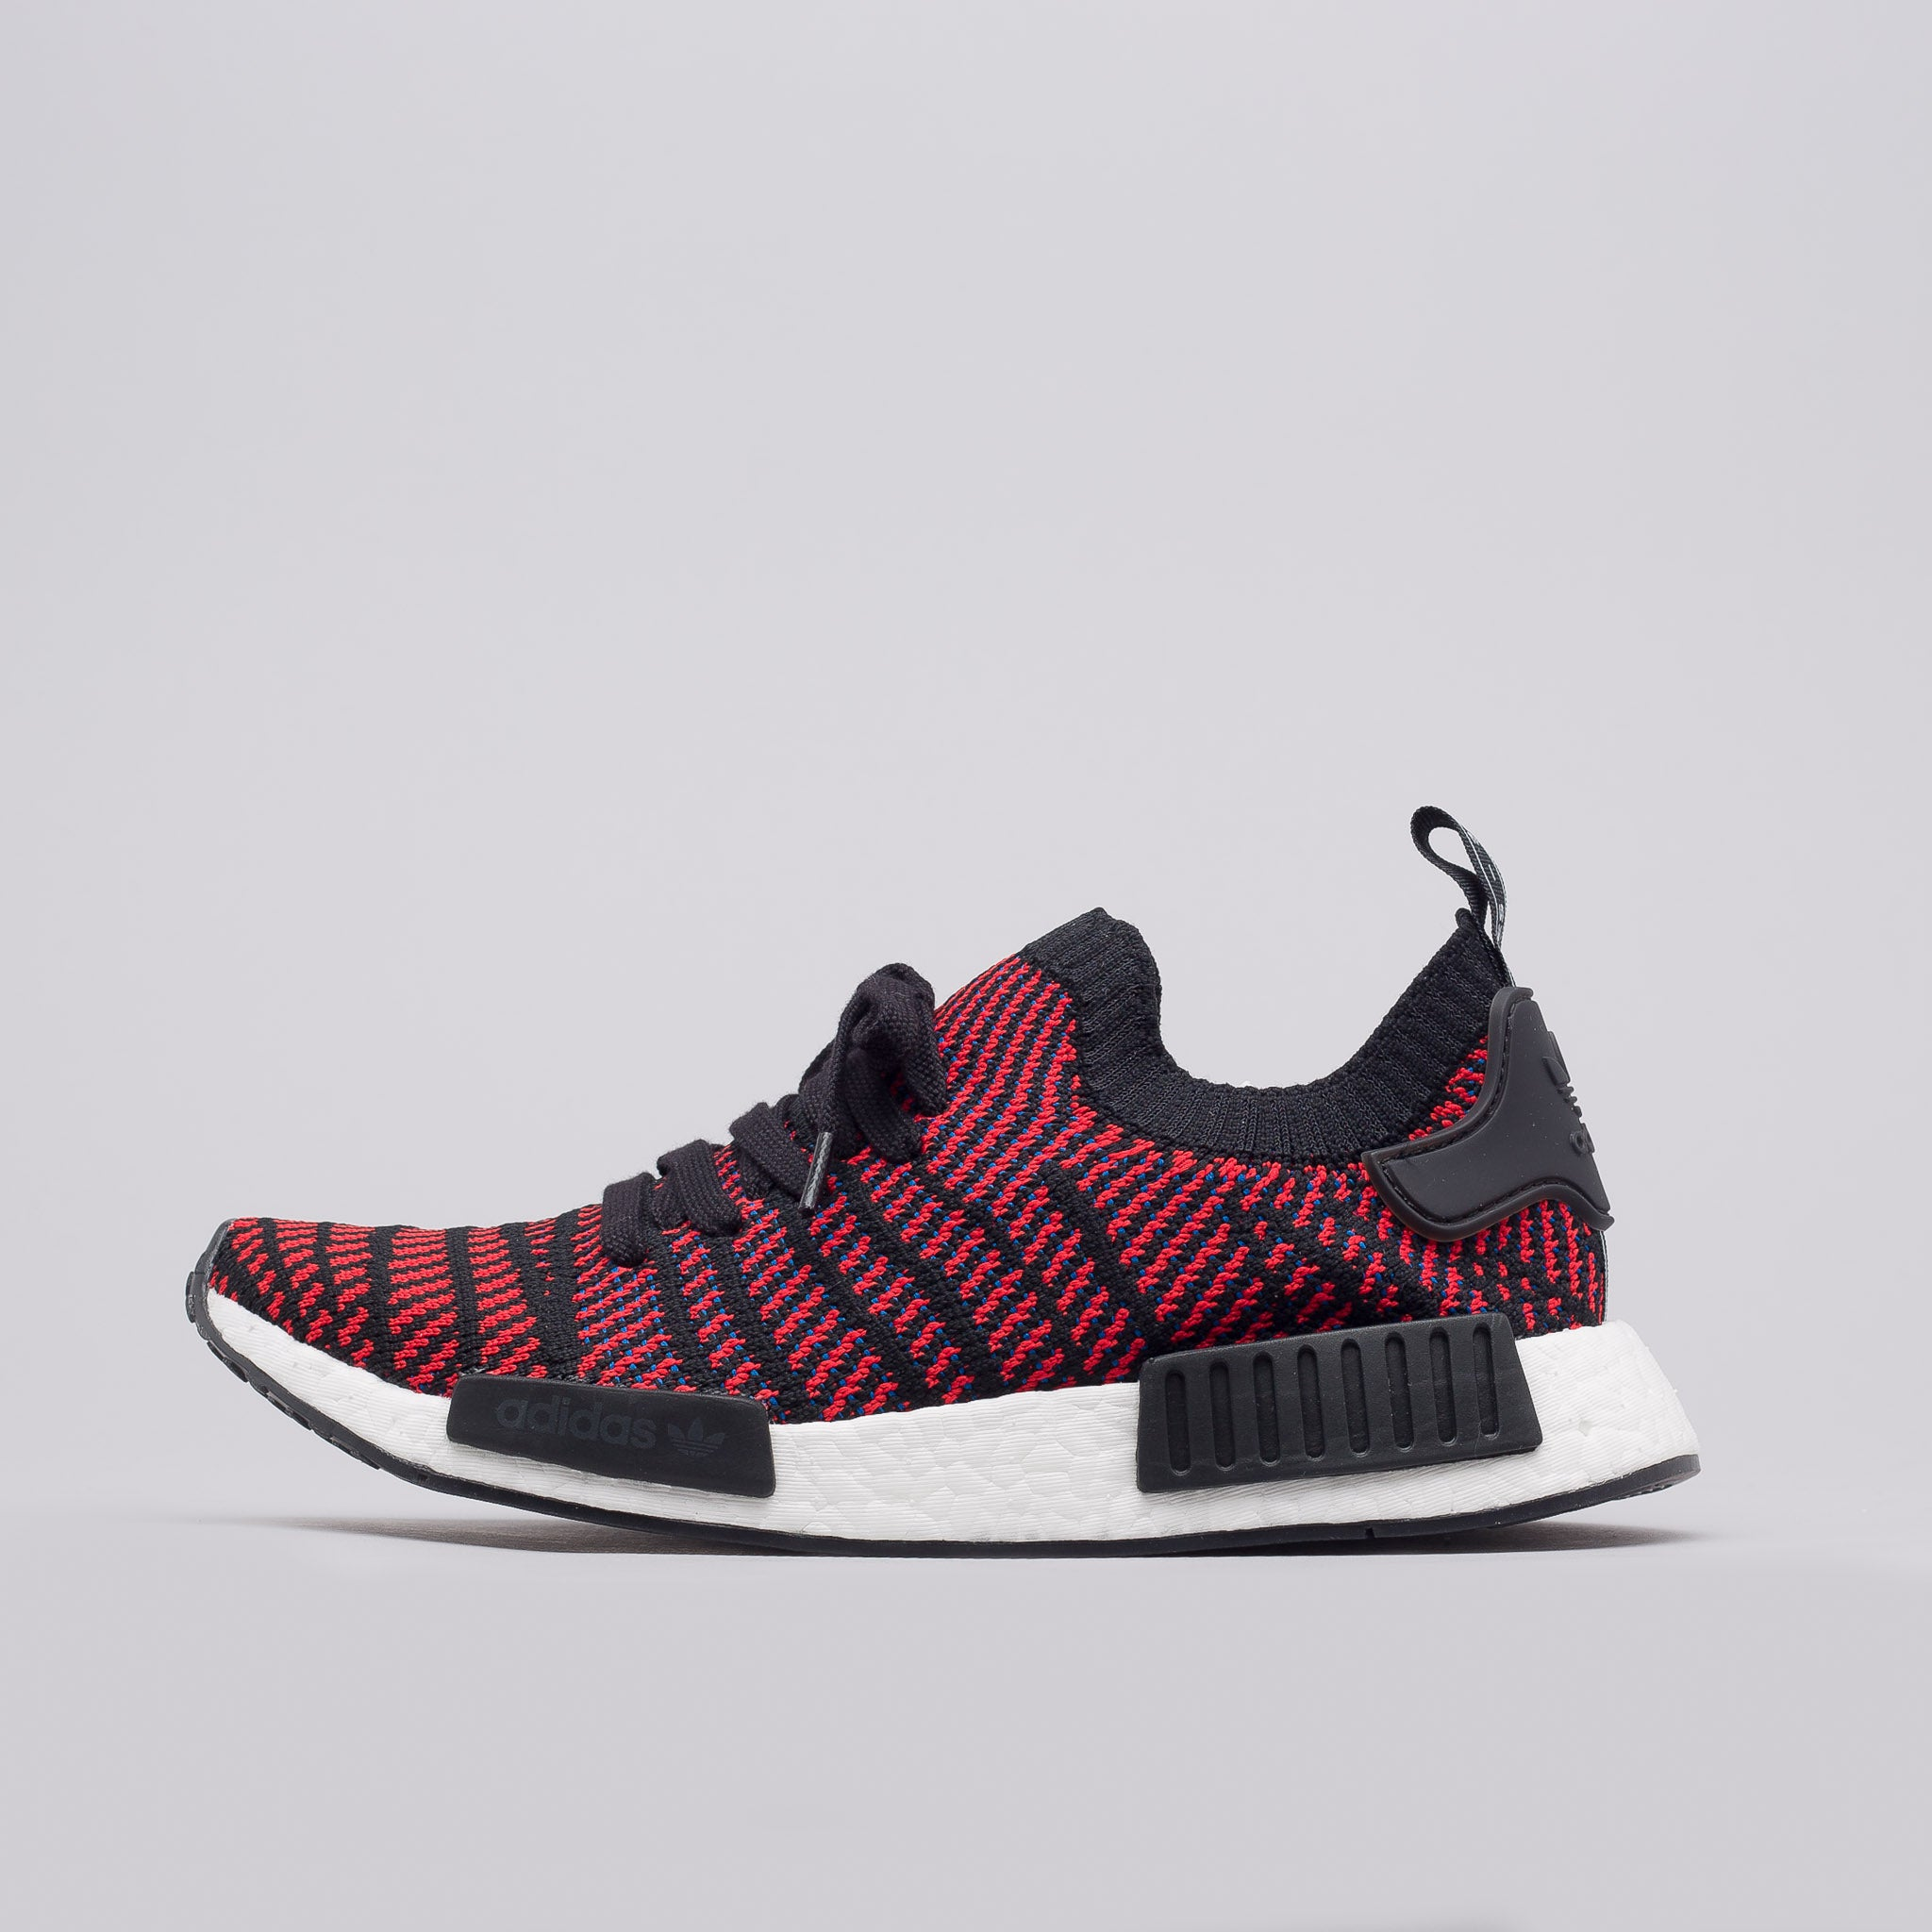 big Discount ADIDAS NMD R1 Core Black / Lush Red Mens Shoes